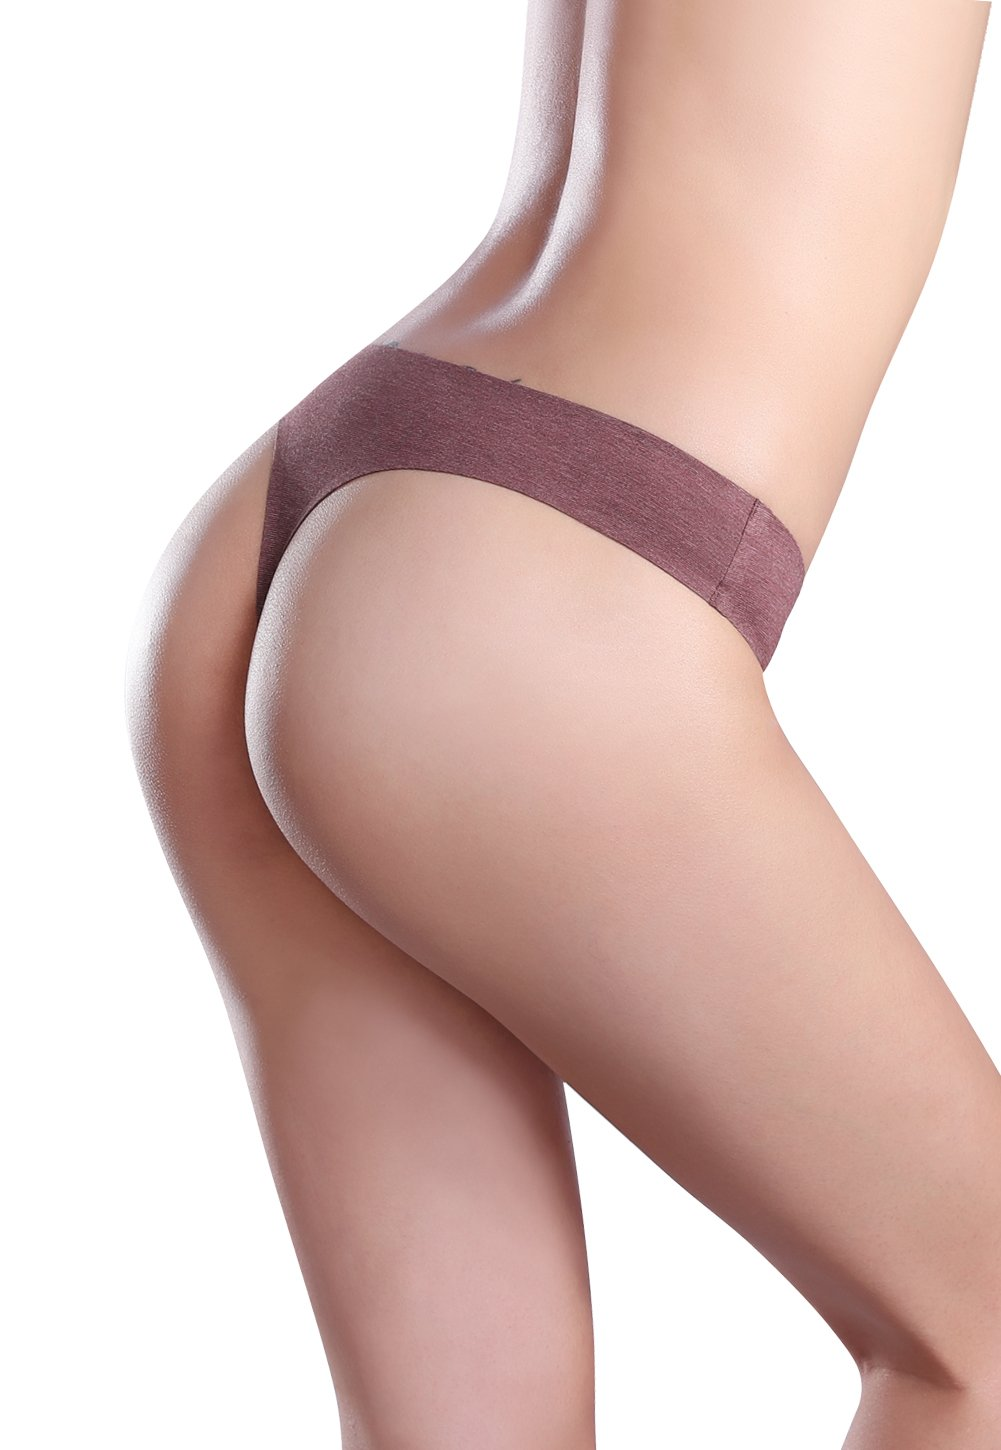 Wealurre Women's Cotton Thong Breathable Panties Low Rise Underwear (Medium, Blue Gold) by Wealurre (Image #6)